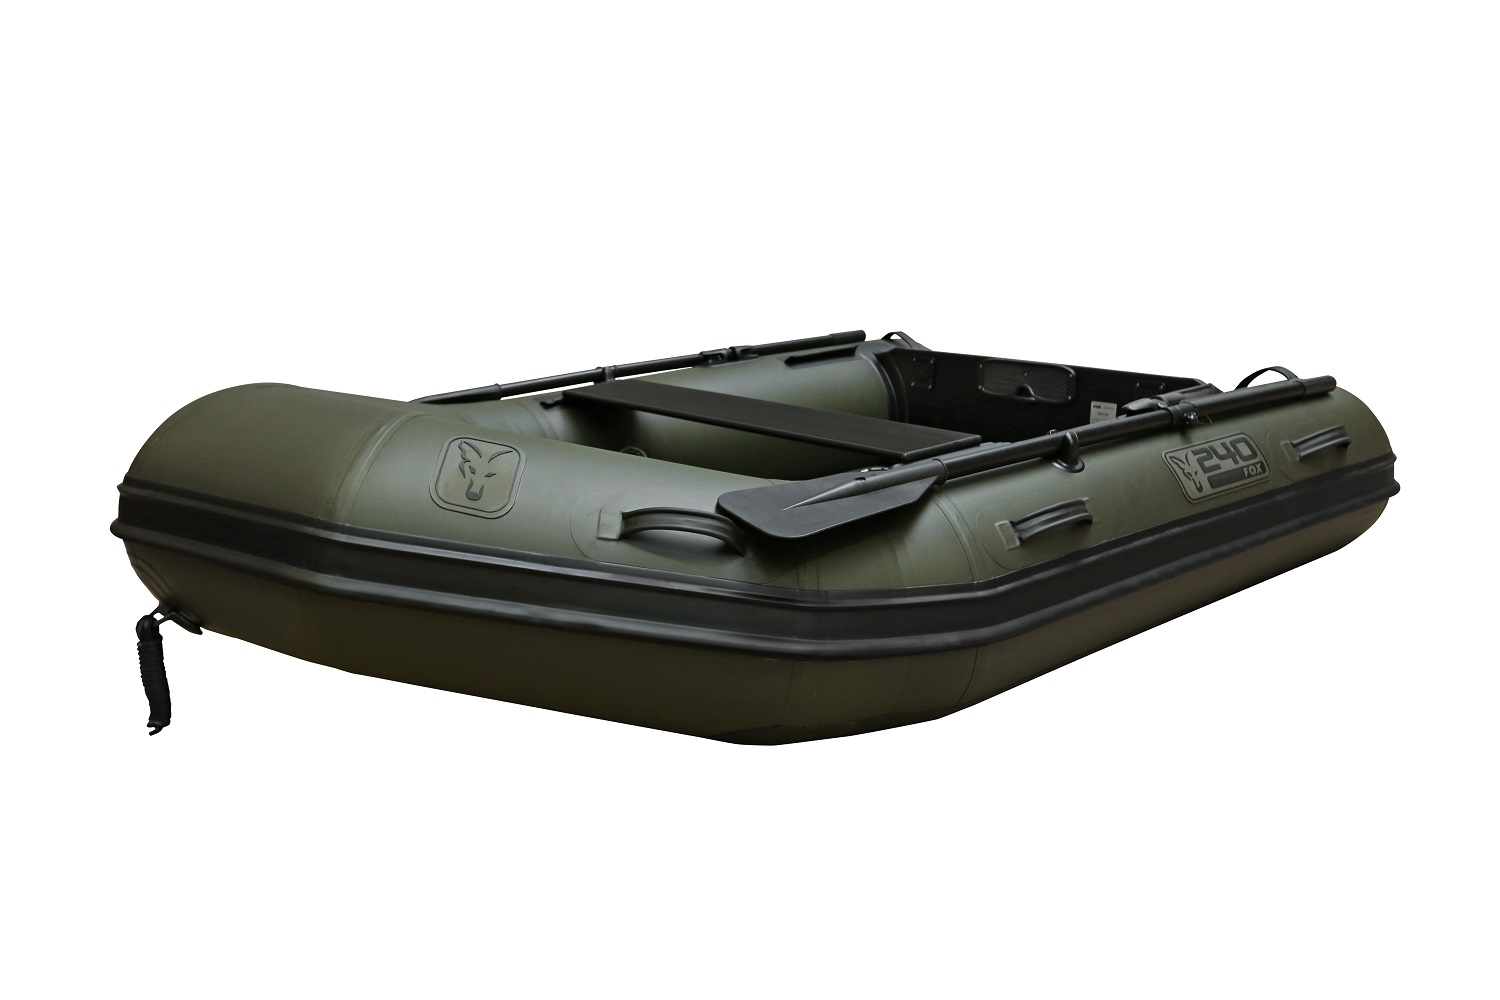 FOX 2.4m Green Inflable Boat - Air Deck Green